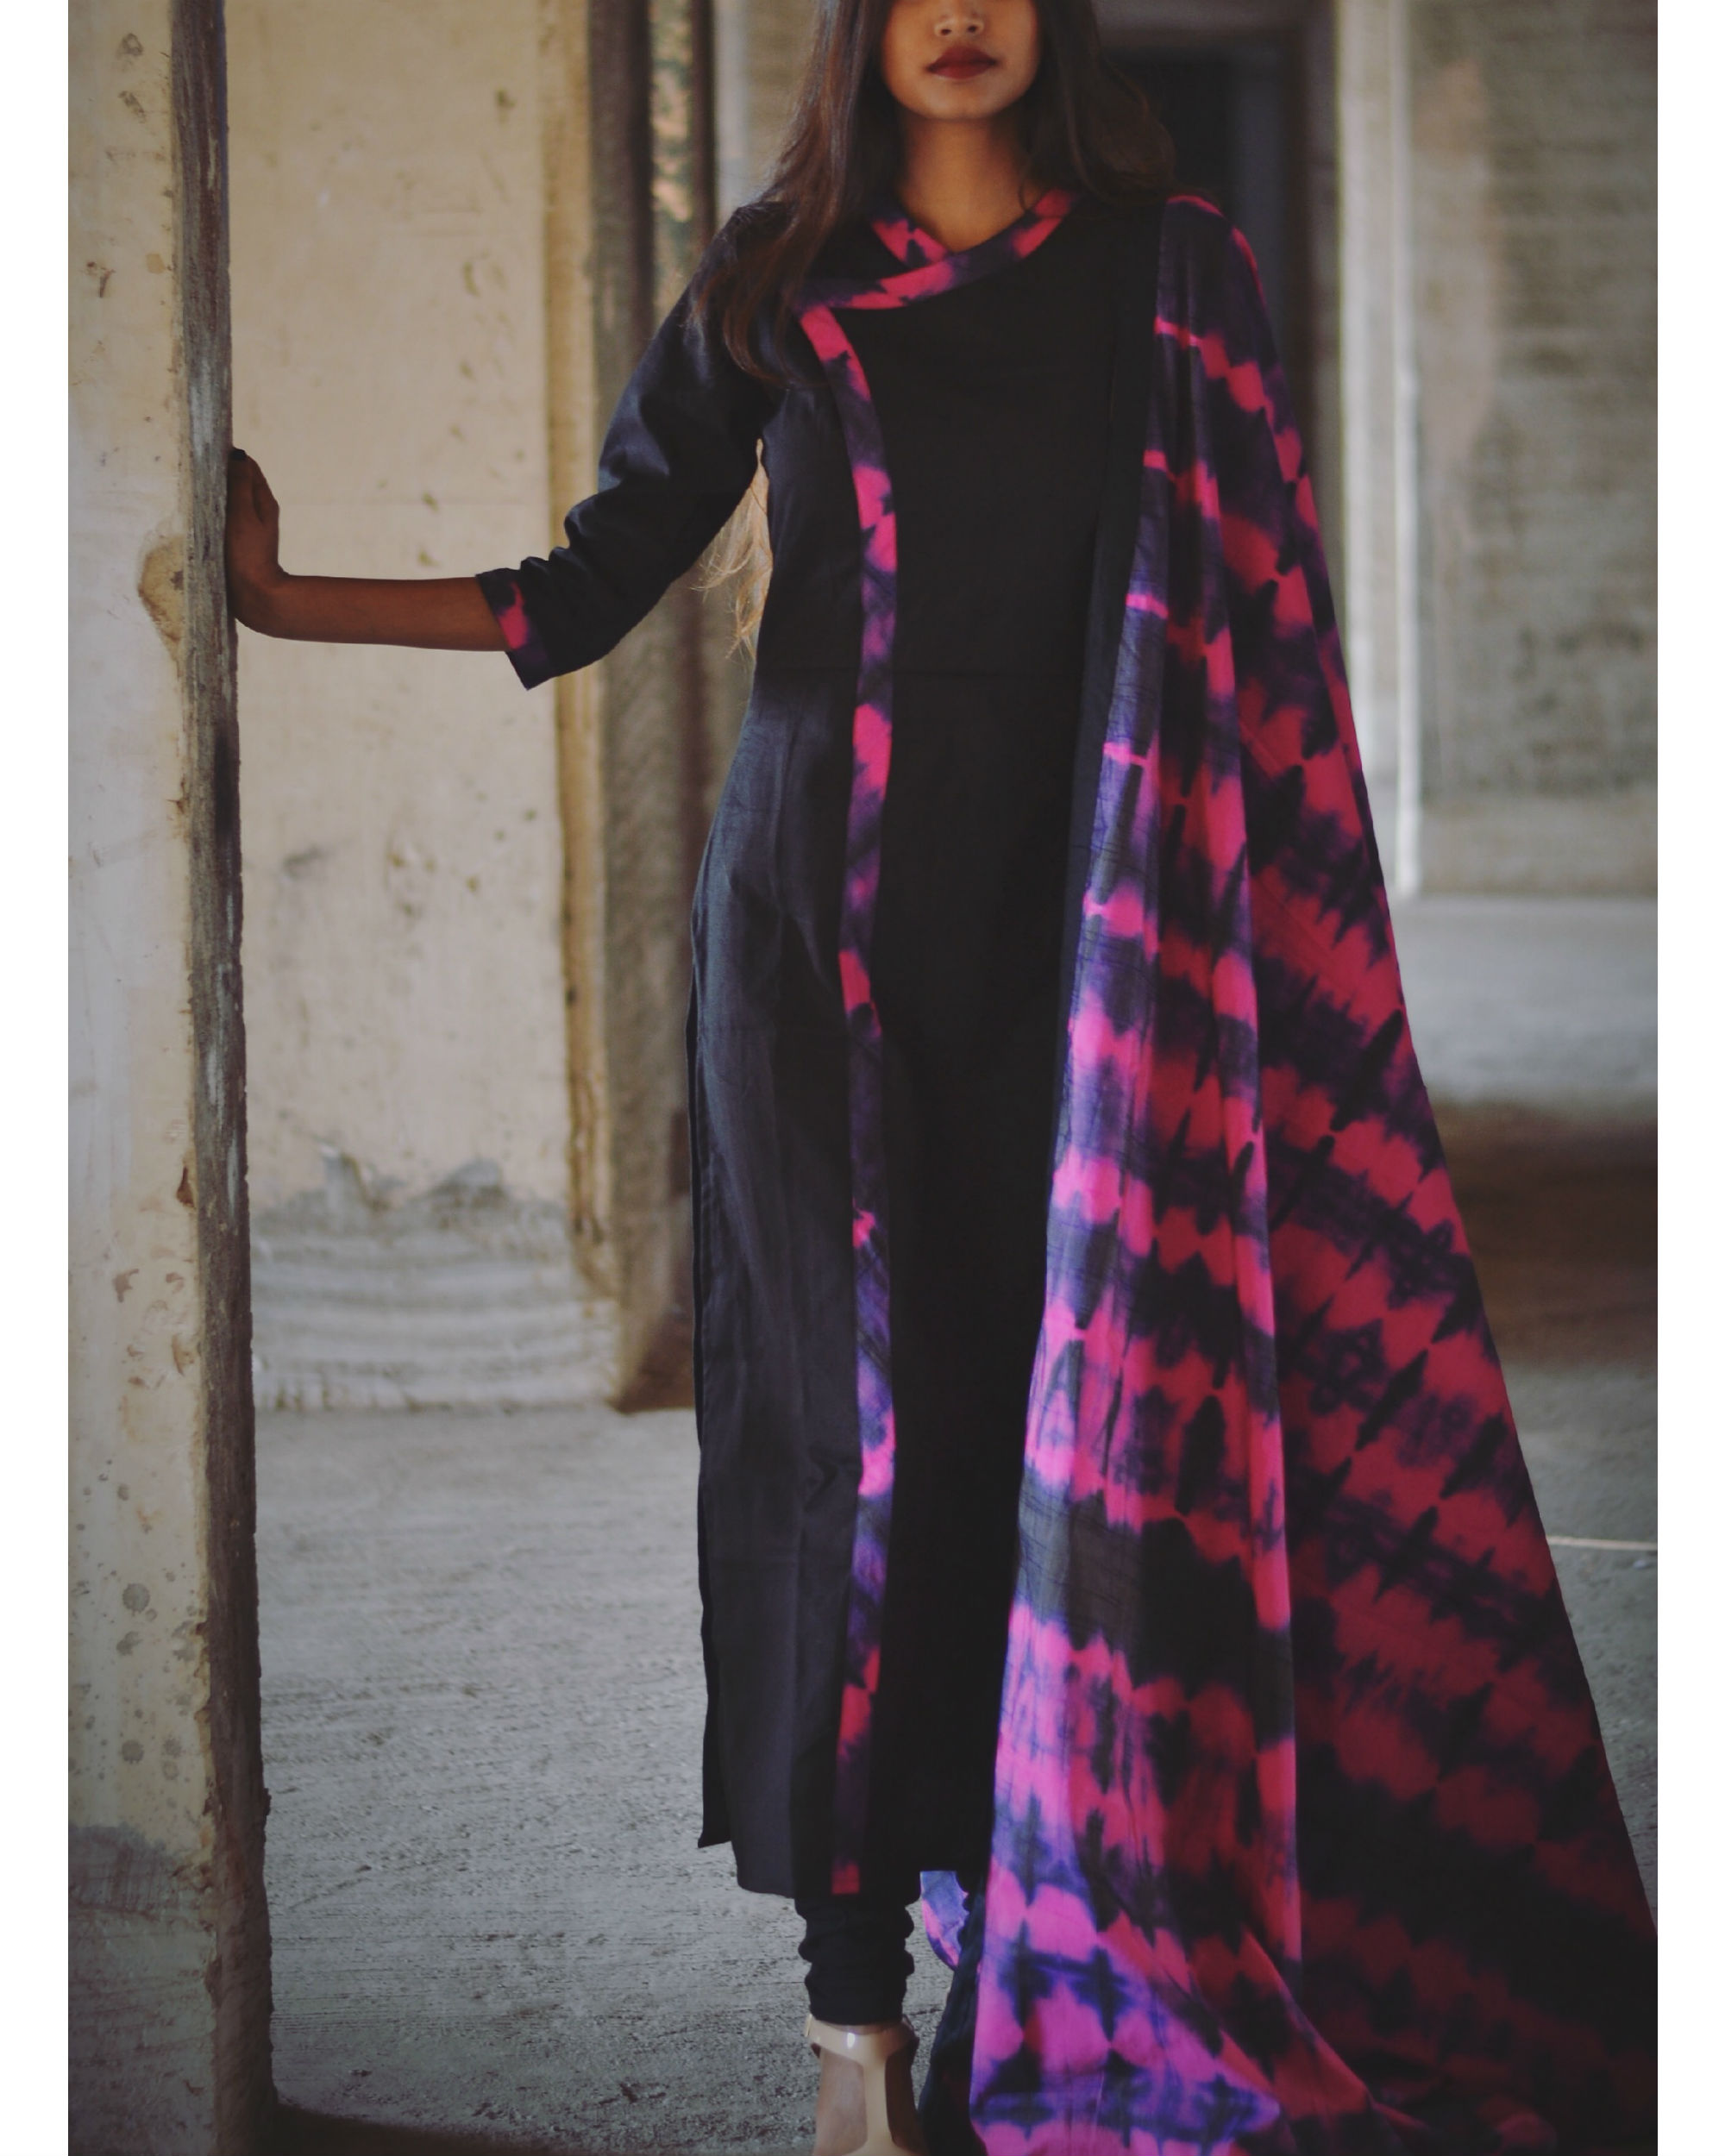 magenta and violet tie and dye kurta and dupatta set by tie dye tale the secret label. Black Bedroom Furniture Sets. Home Design Ideas